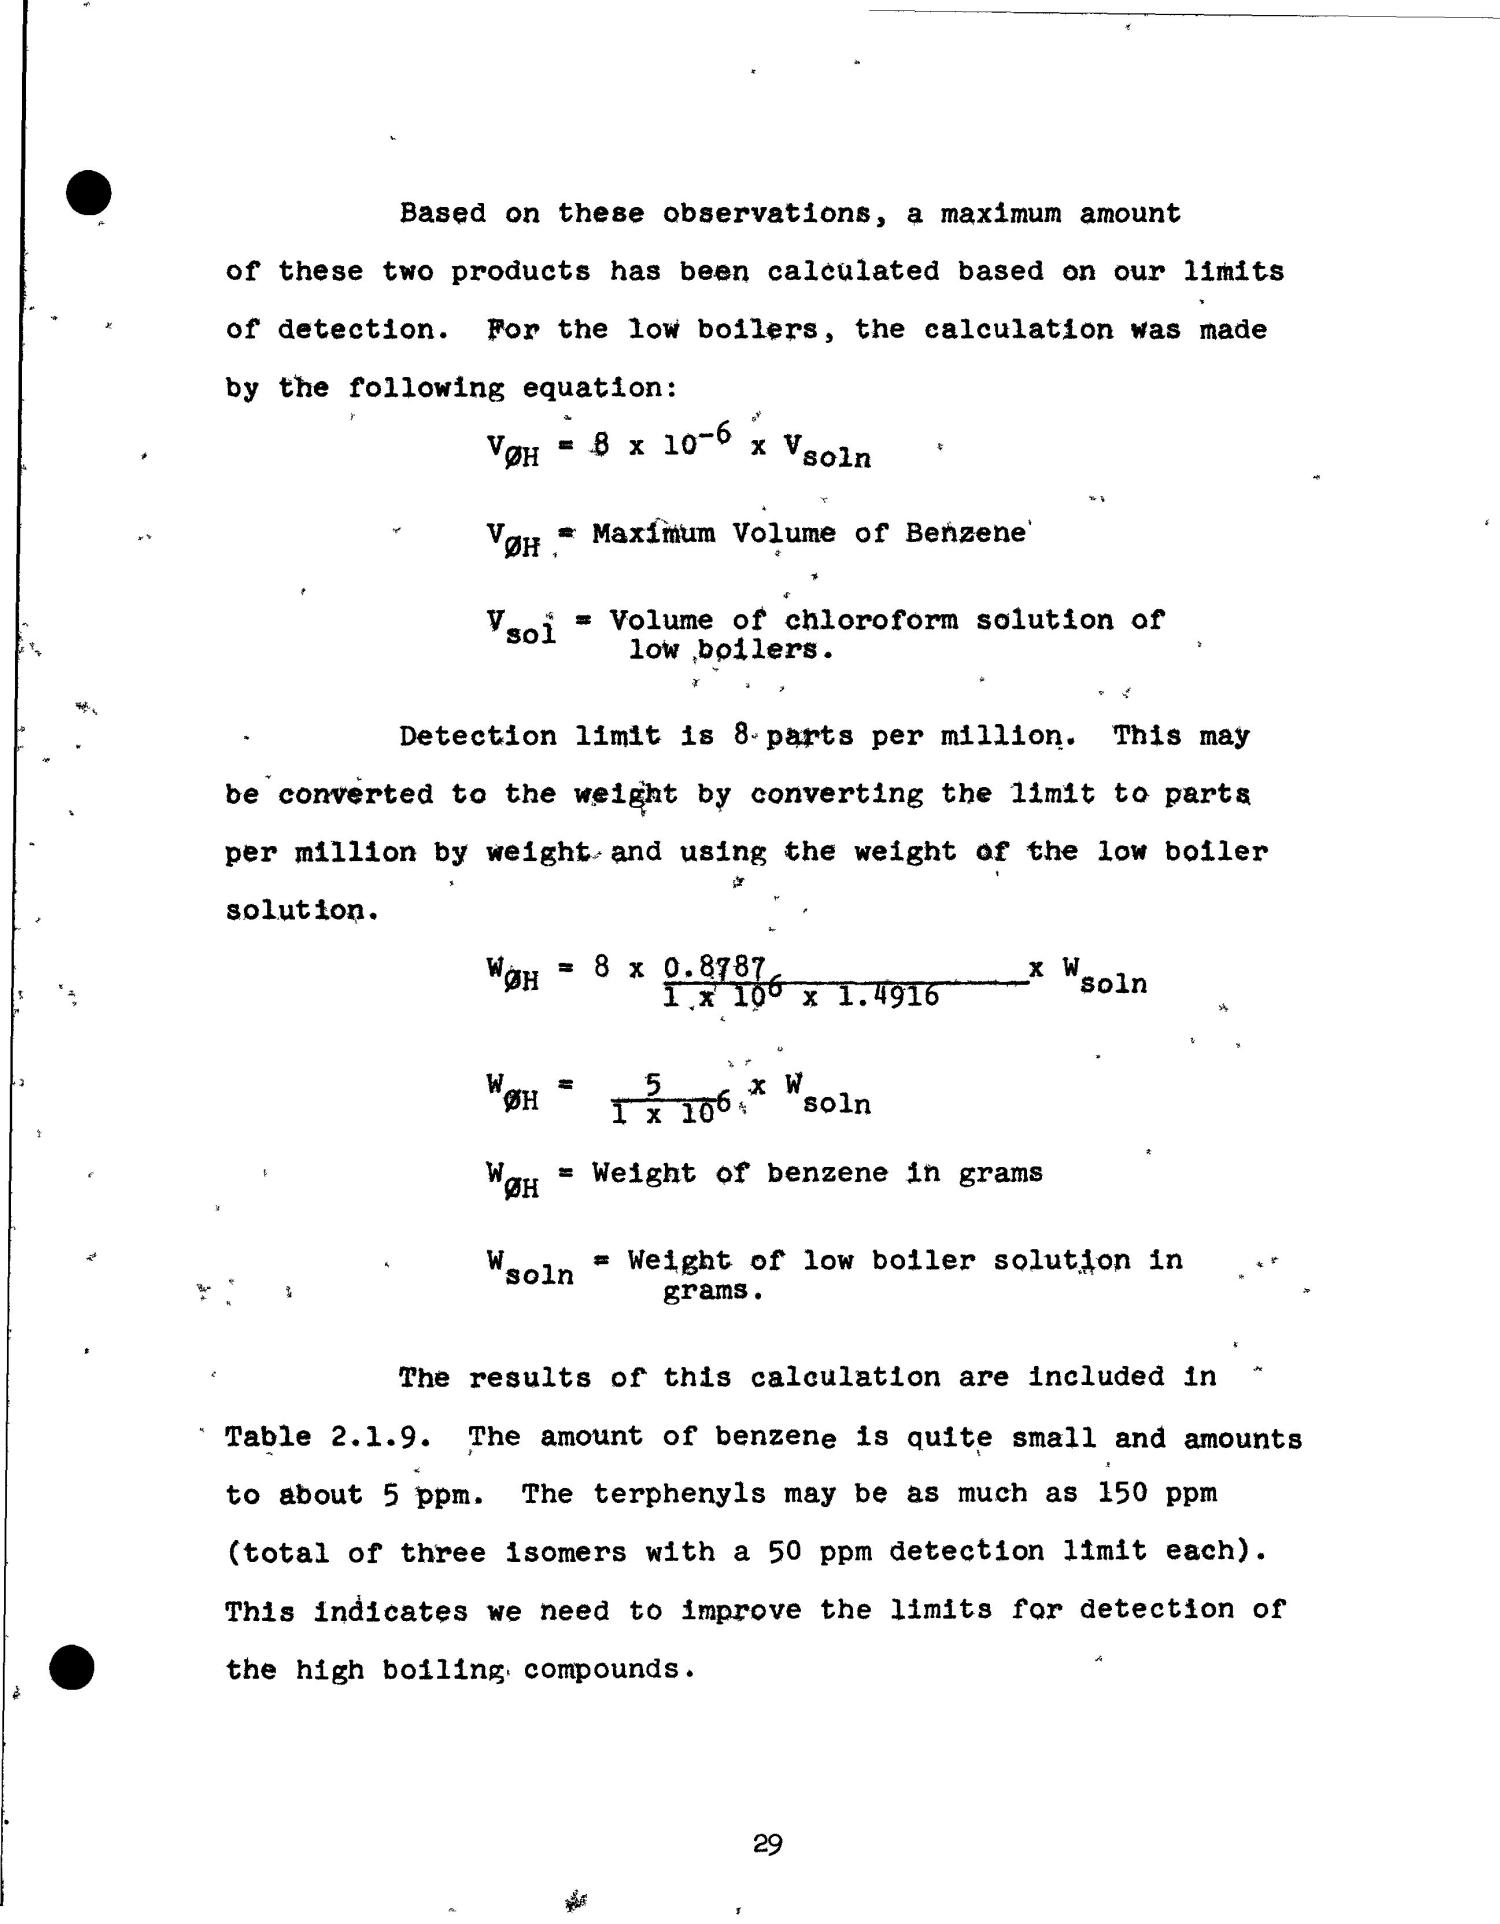 ORGANIC RANKINE CYCLE TECHNOLOGY PROGRAM. Quarterly Progress Report No. 6, July 1, 1967--October 1, 1967.                                                                                                      [Sequence #]: 38 of 62